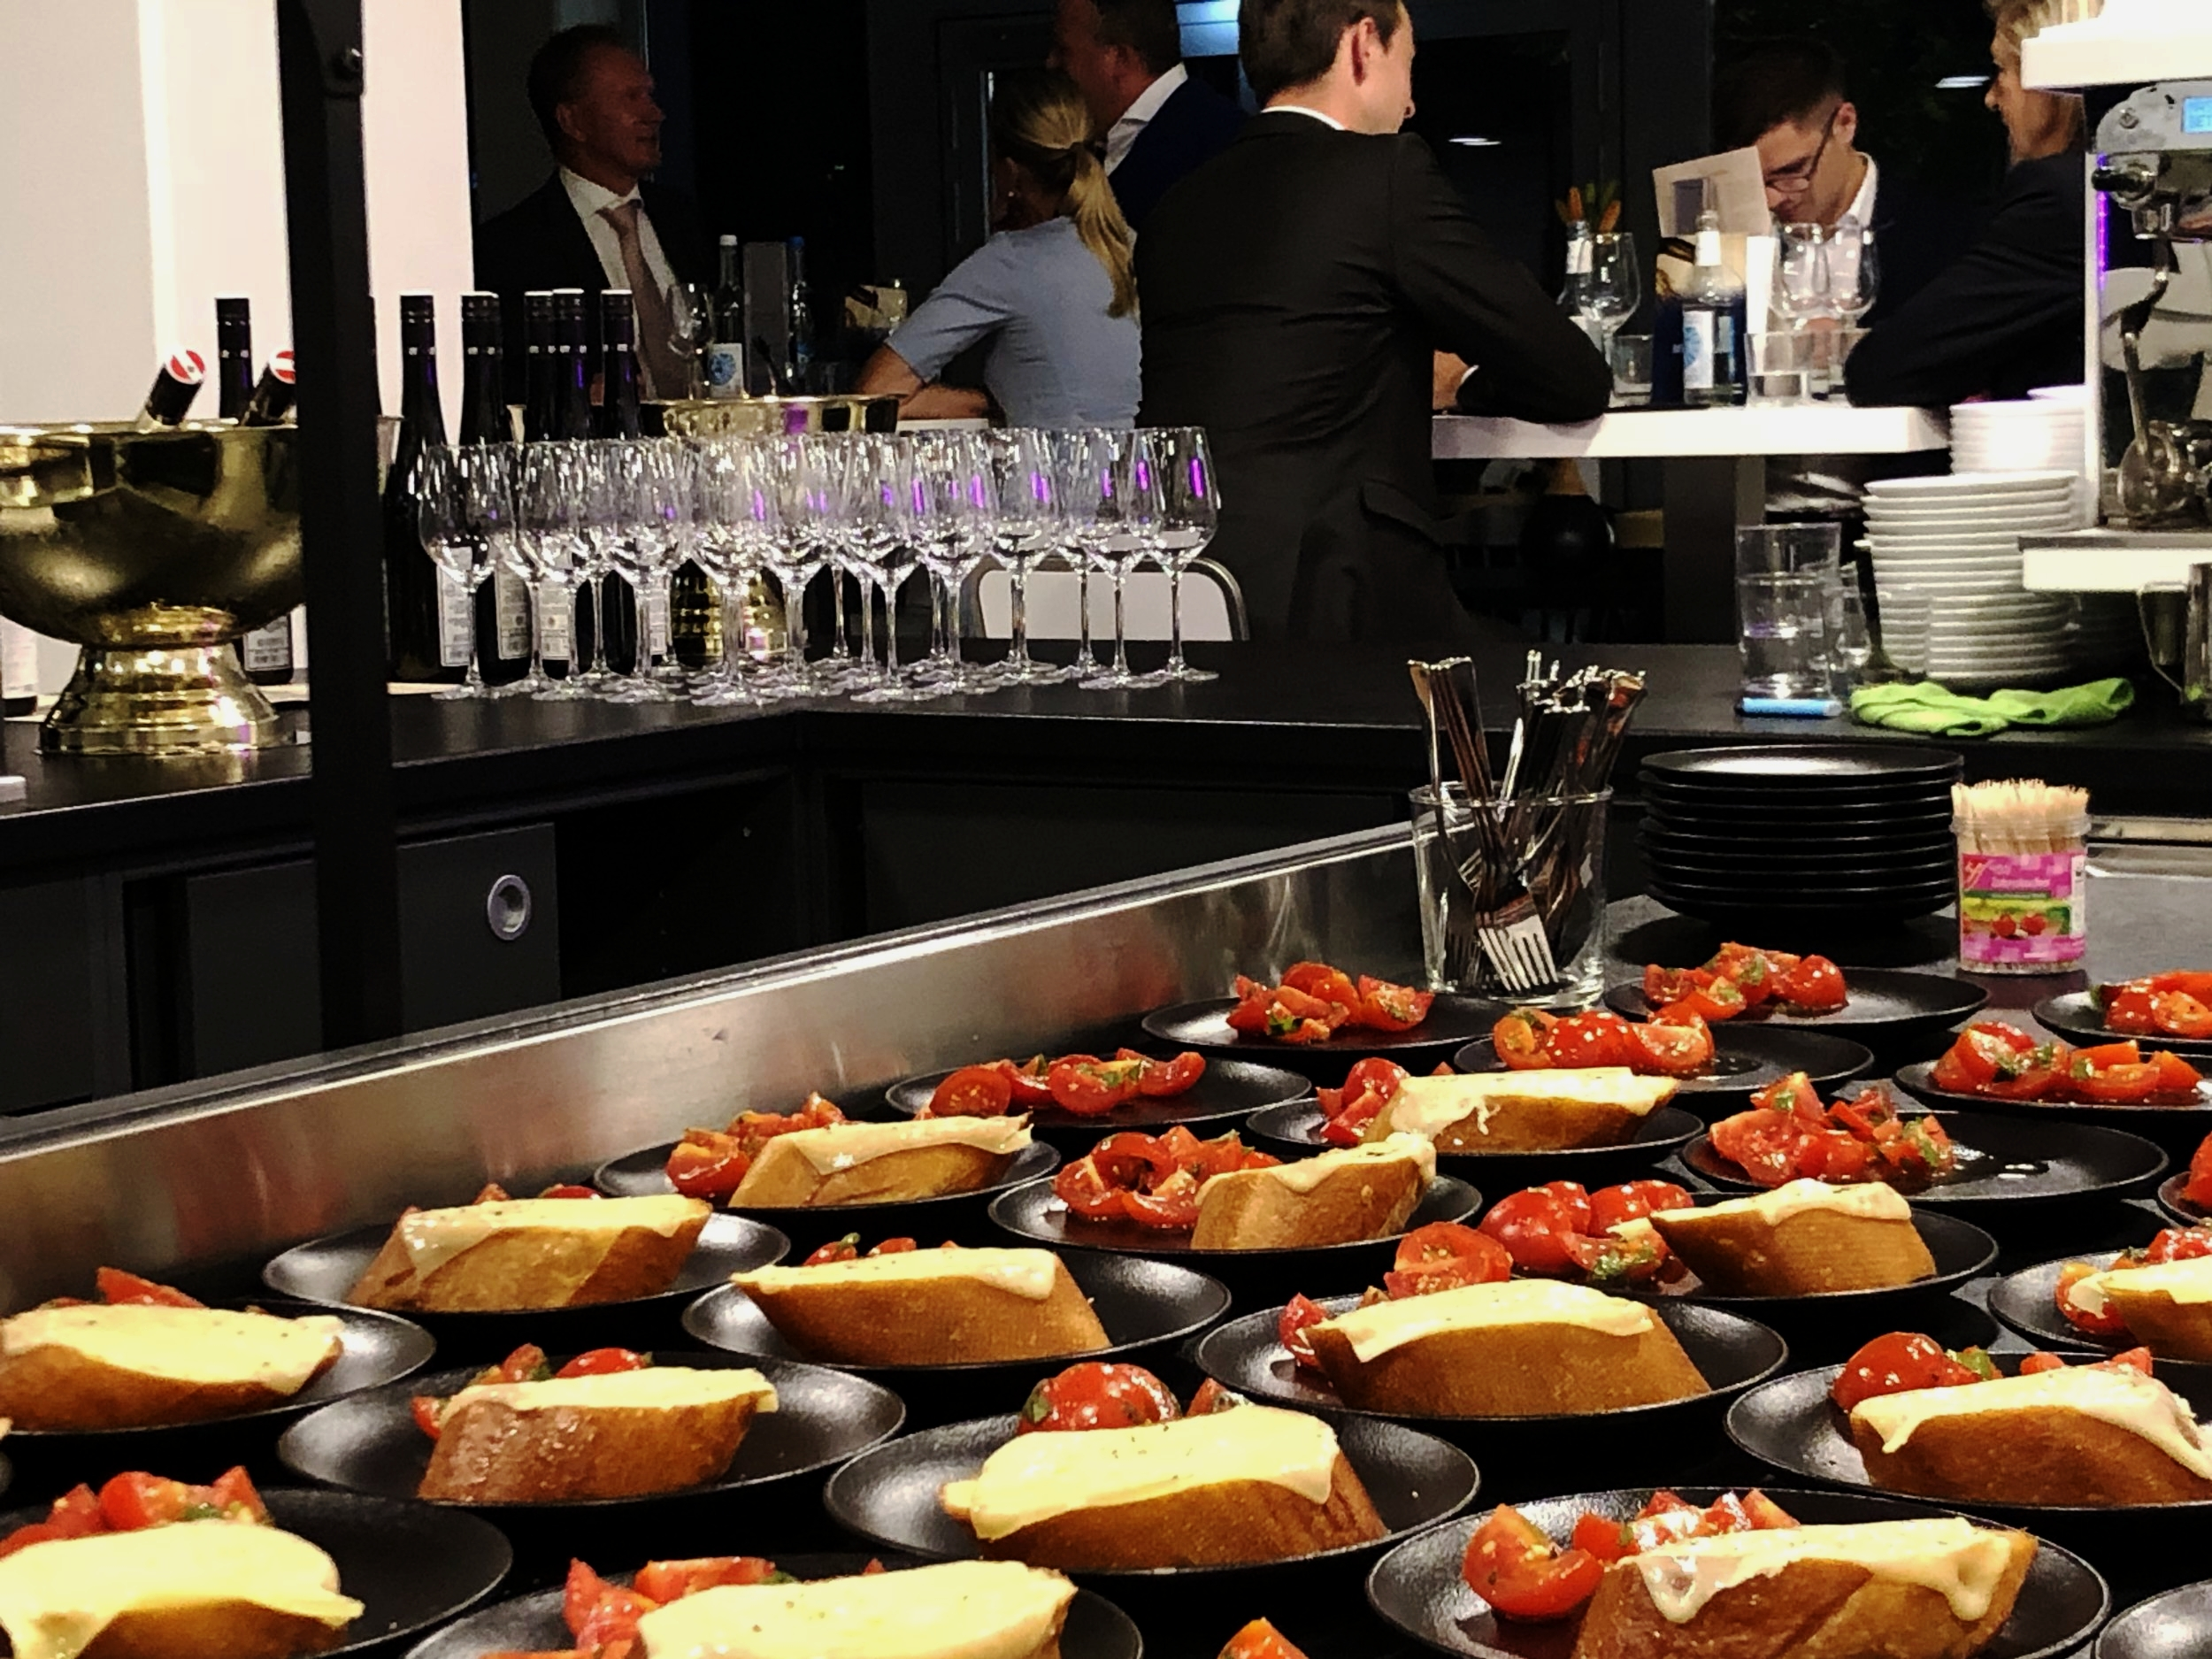 Event-Planung, Location, Catering, Team Building, Winetasting